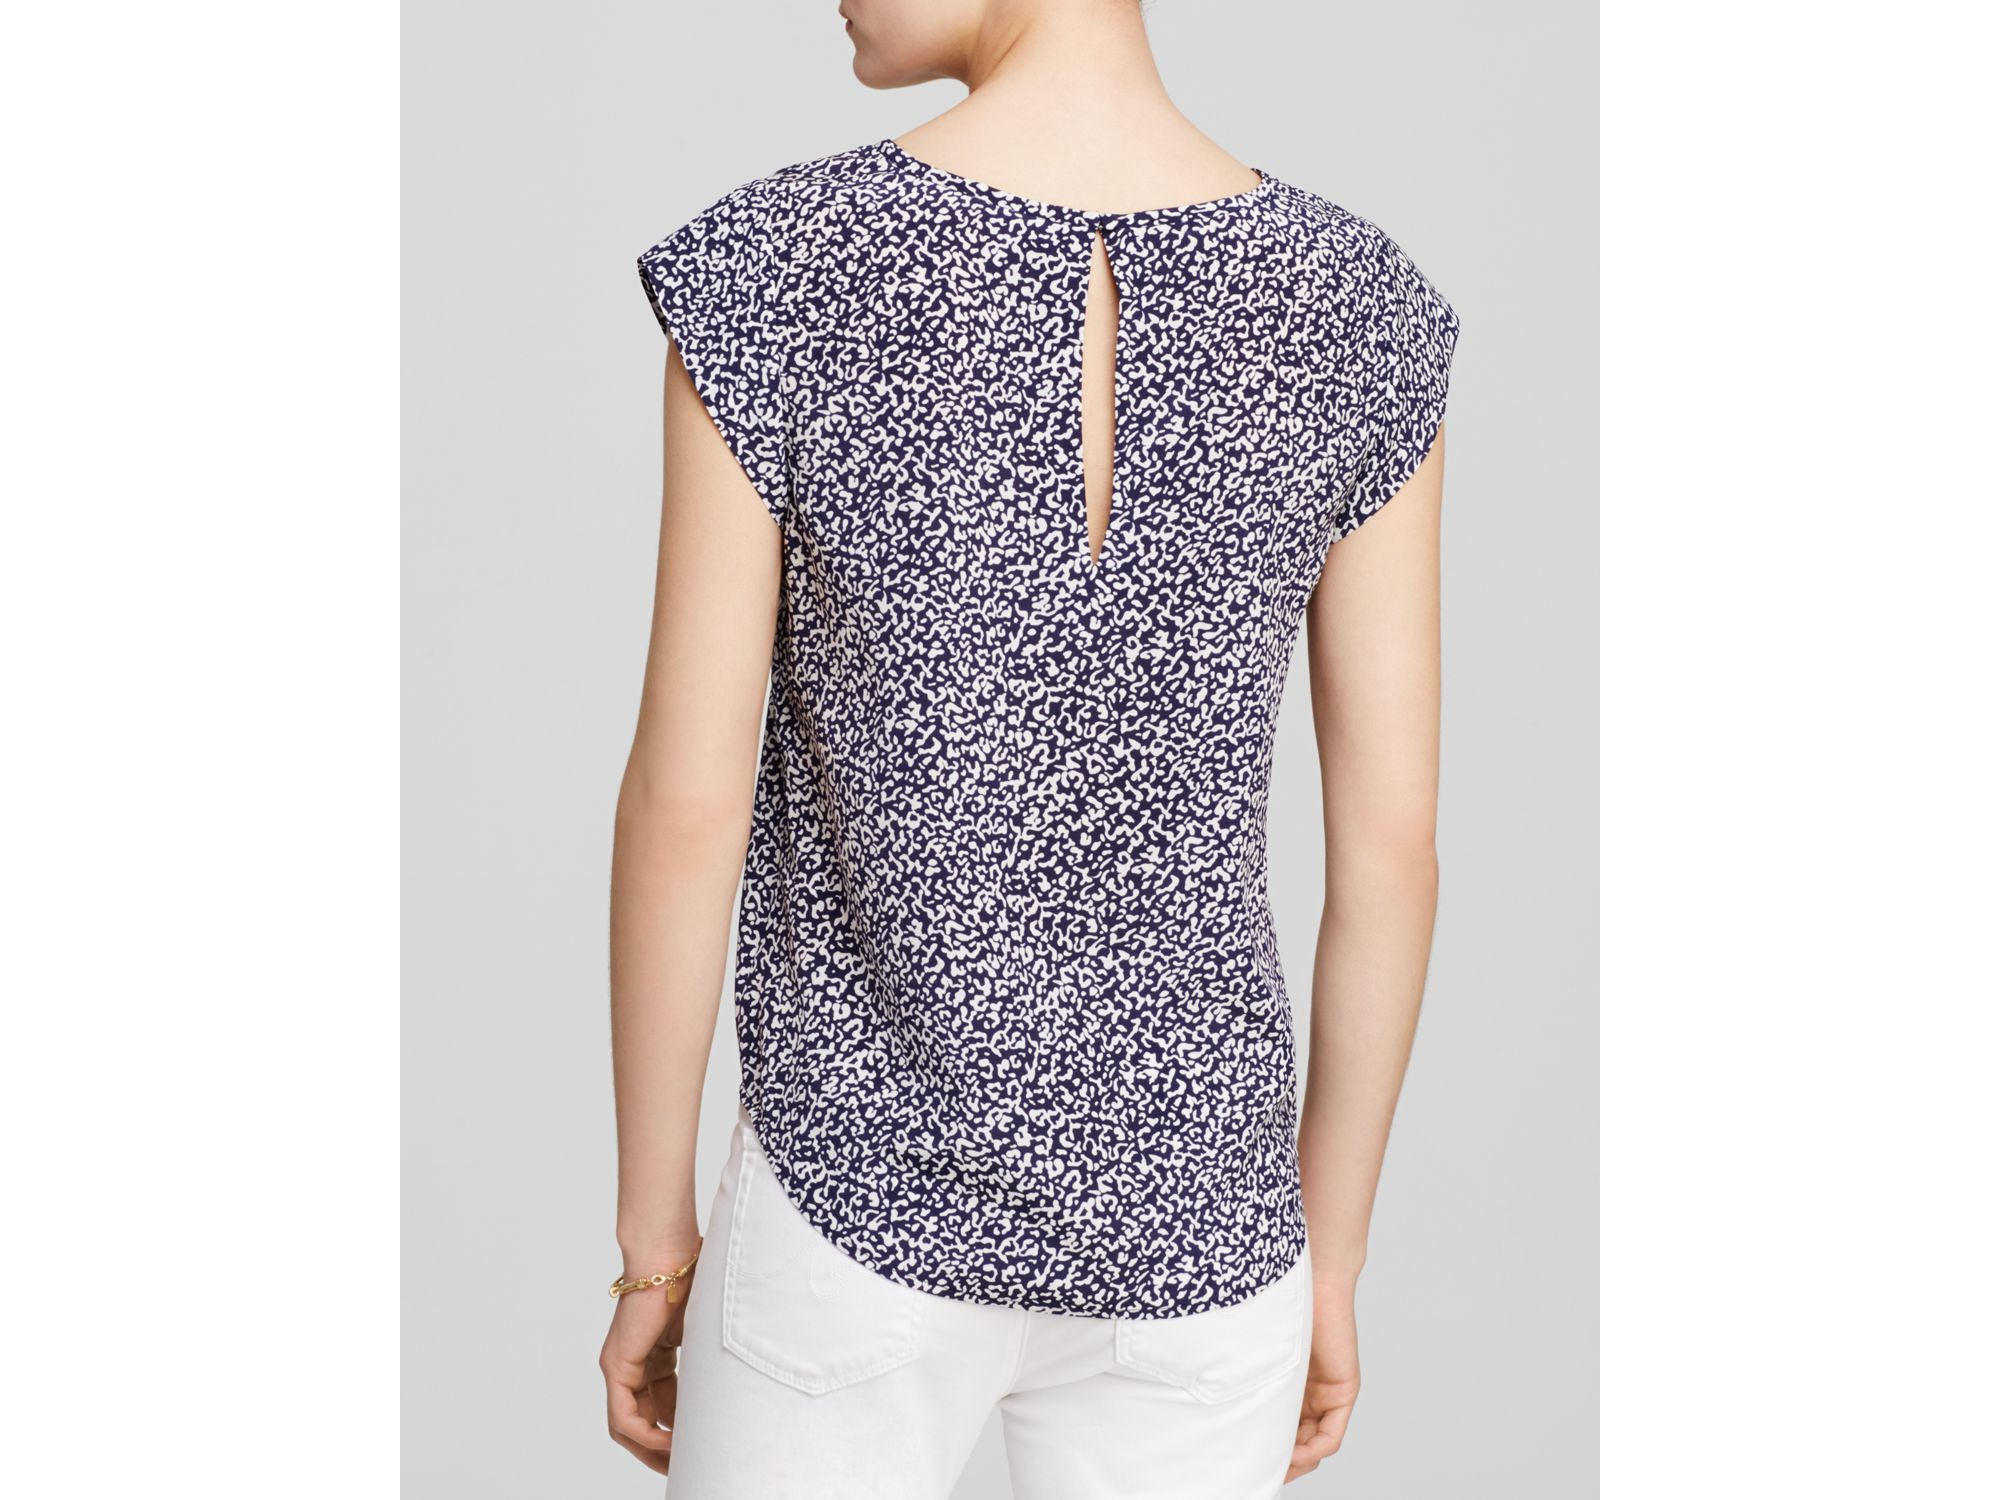 2a6449aed6395 Lyst - Joie Rancher Animal Print Top in Blue